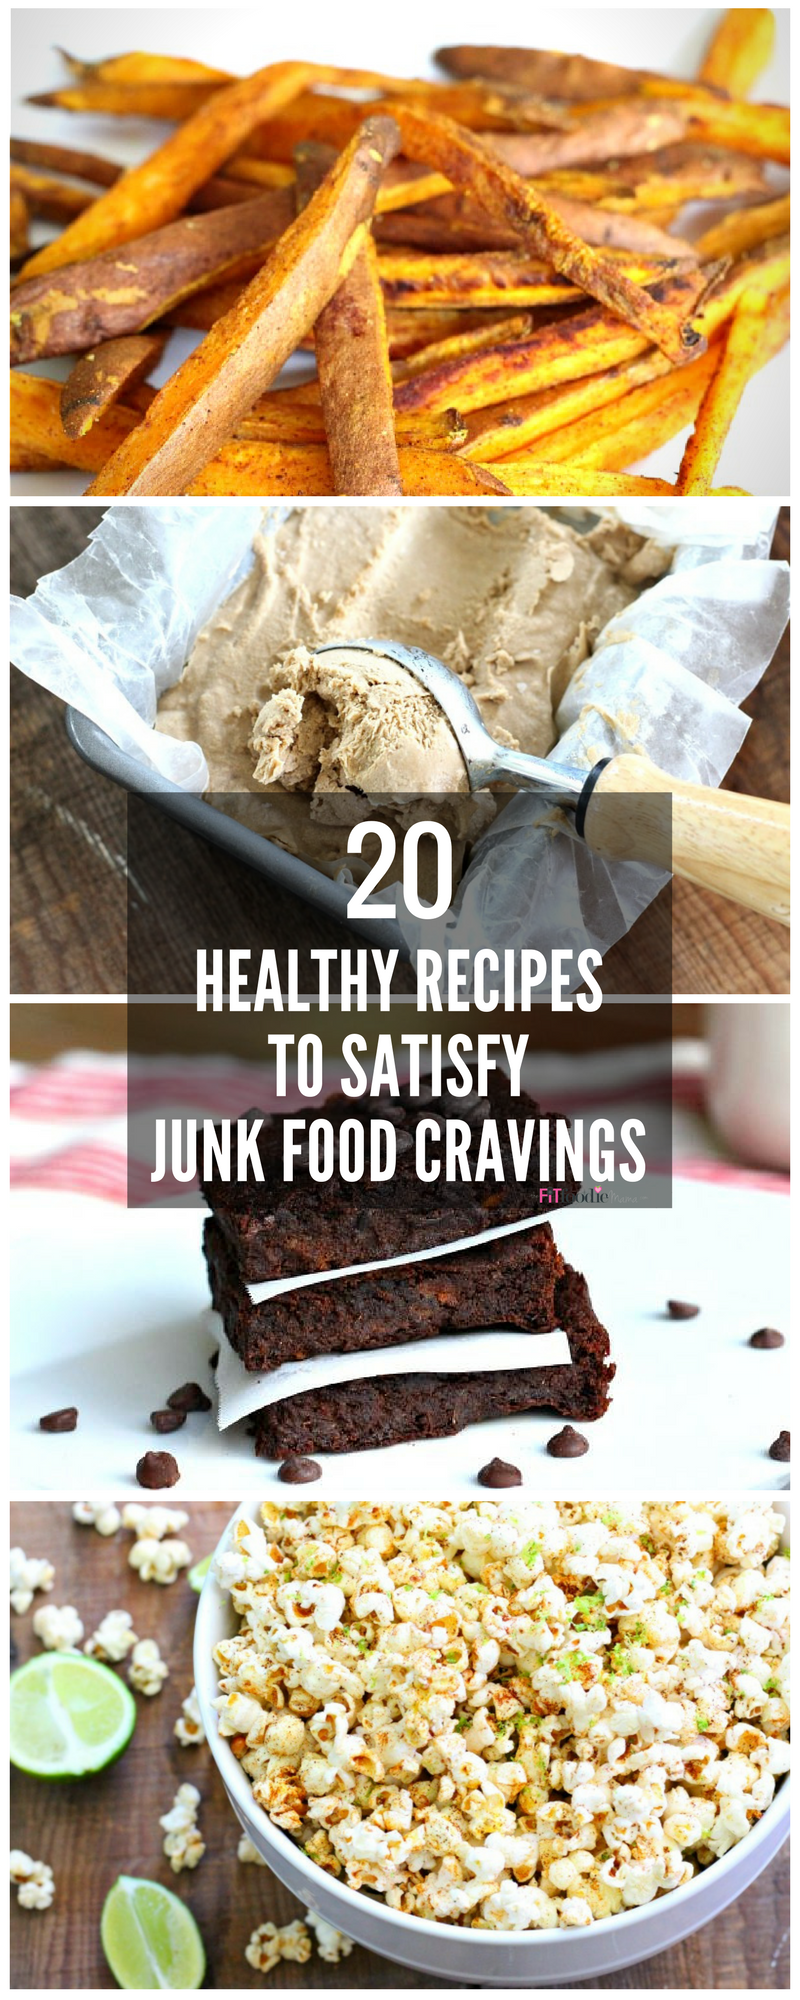 Healthy recipes to satisfy junk food cravings